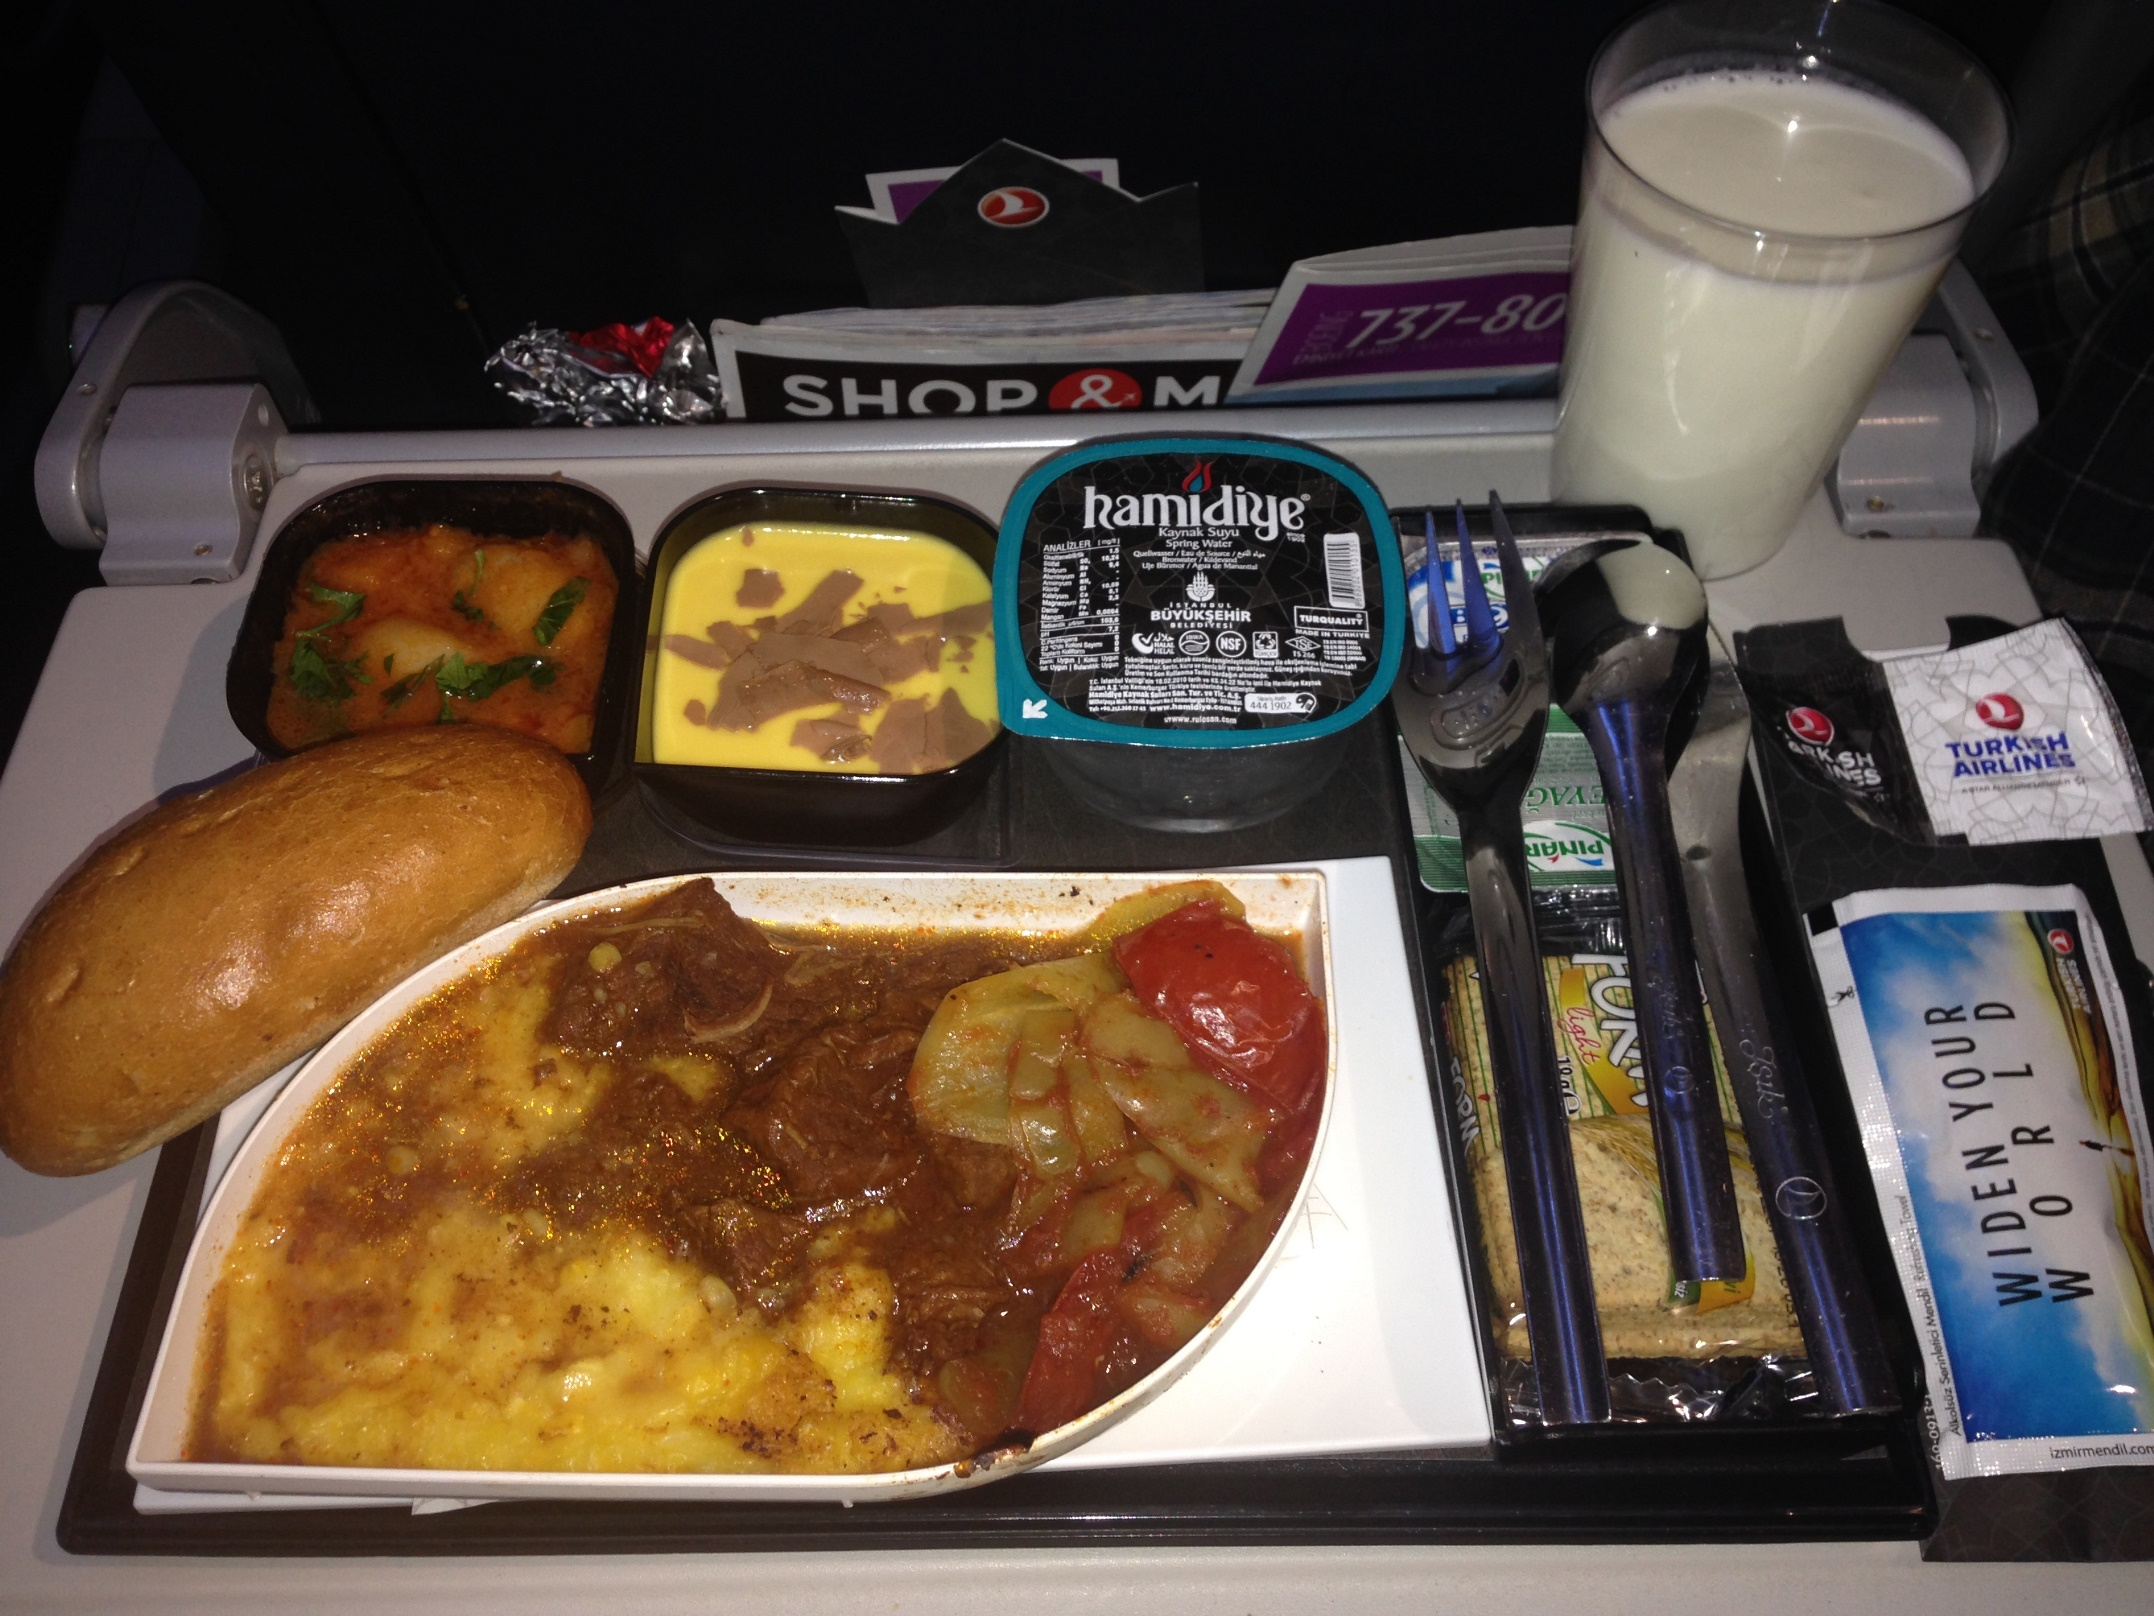 THY_Turkish Airlines_inflight meal_Istanbul-London_Economy Class_Oct 2015_004